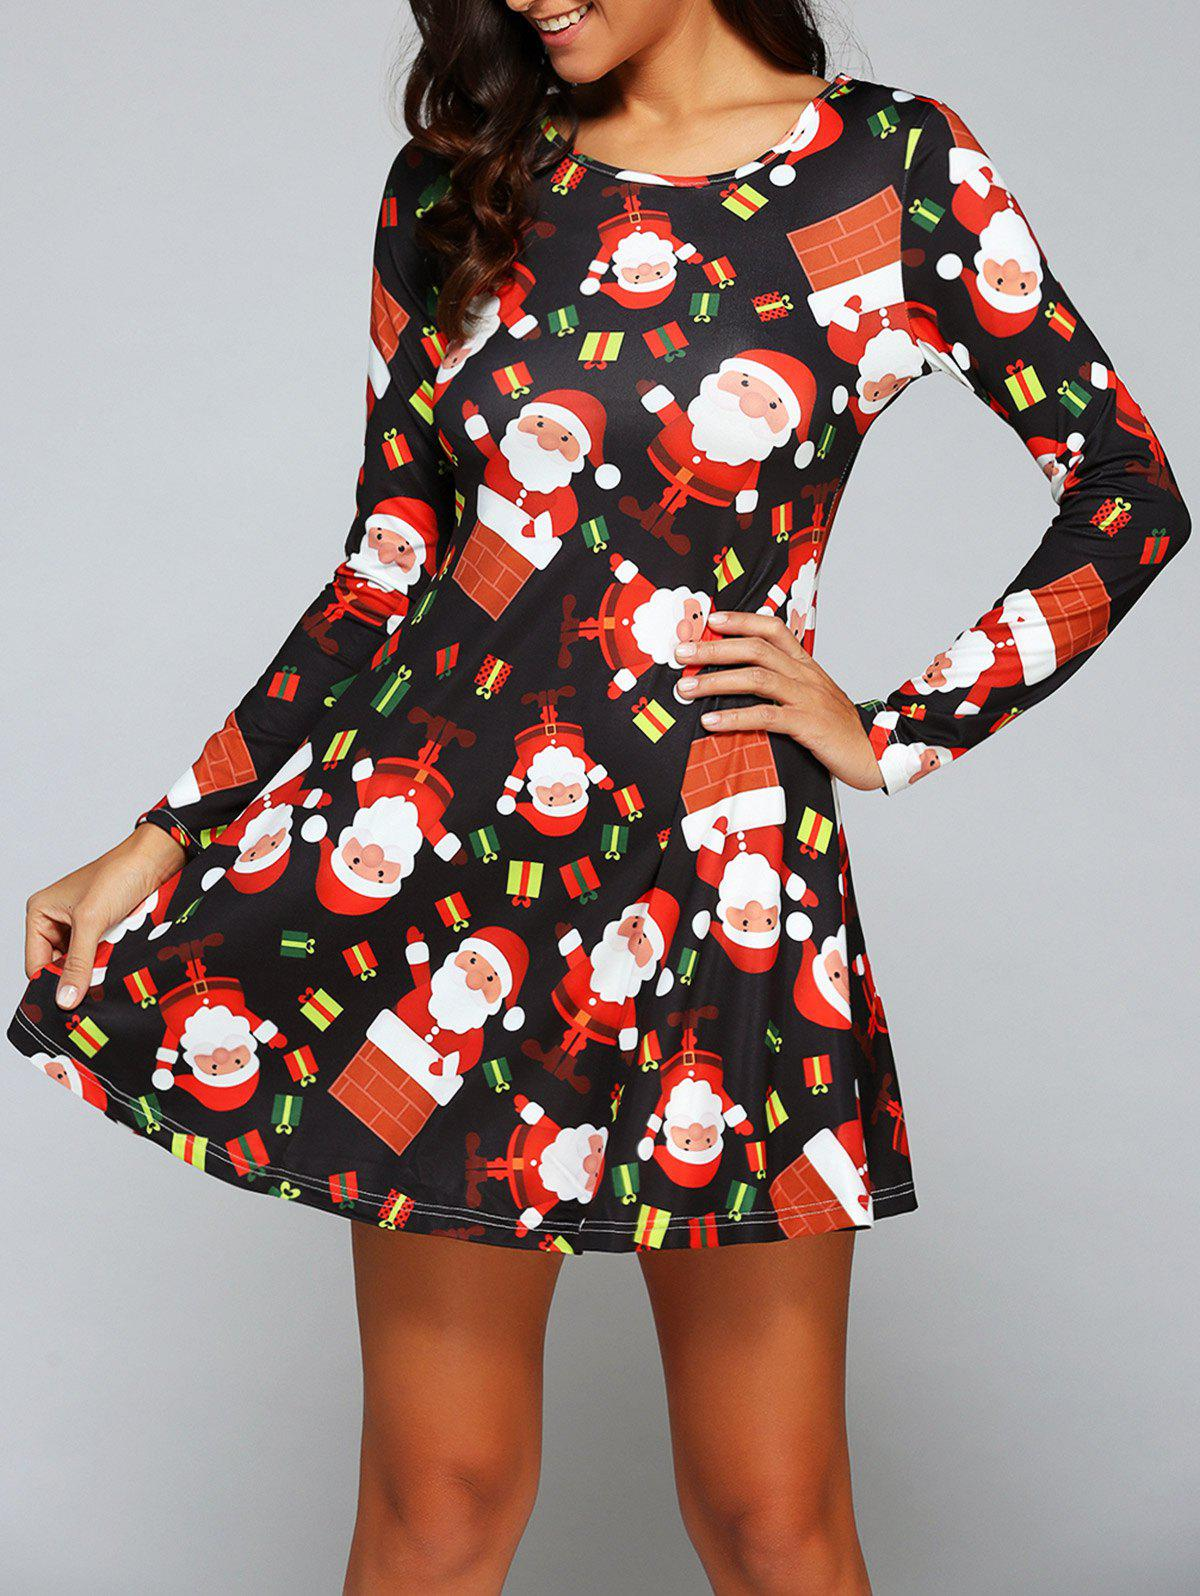 Long Sleeve Gift Print Xmas Swing DressWOMEN<br><br>Size: XL; Color: BLACK; Style: Casual; Material: Polyester; Silhouette: A-Line; Neckline: Round Collar; Dresses Length: Mini; Sleeve Length: Long Sleeves; Pattern Type: Print; With Belt: No; Season: Fall,Winter; Weight: 0.300kg; Package Contents: 1 x Dress;